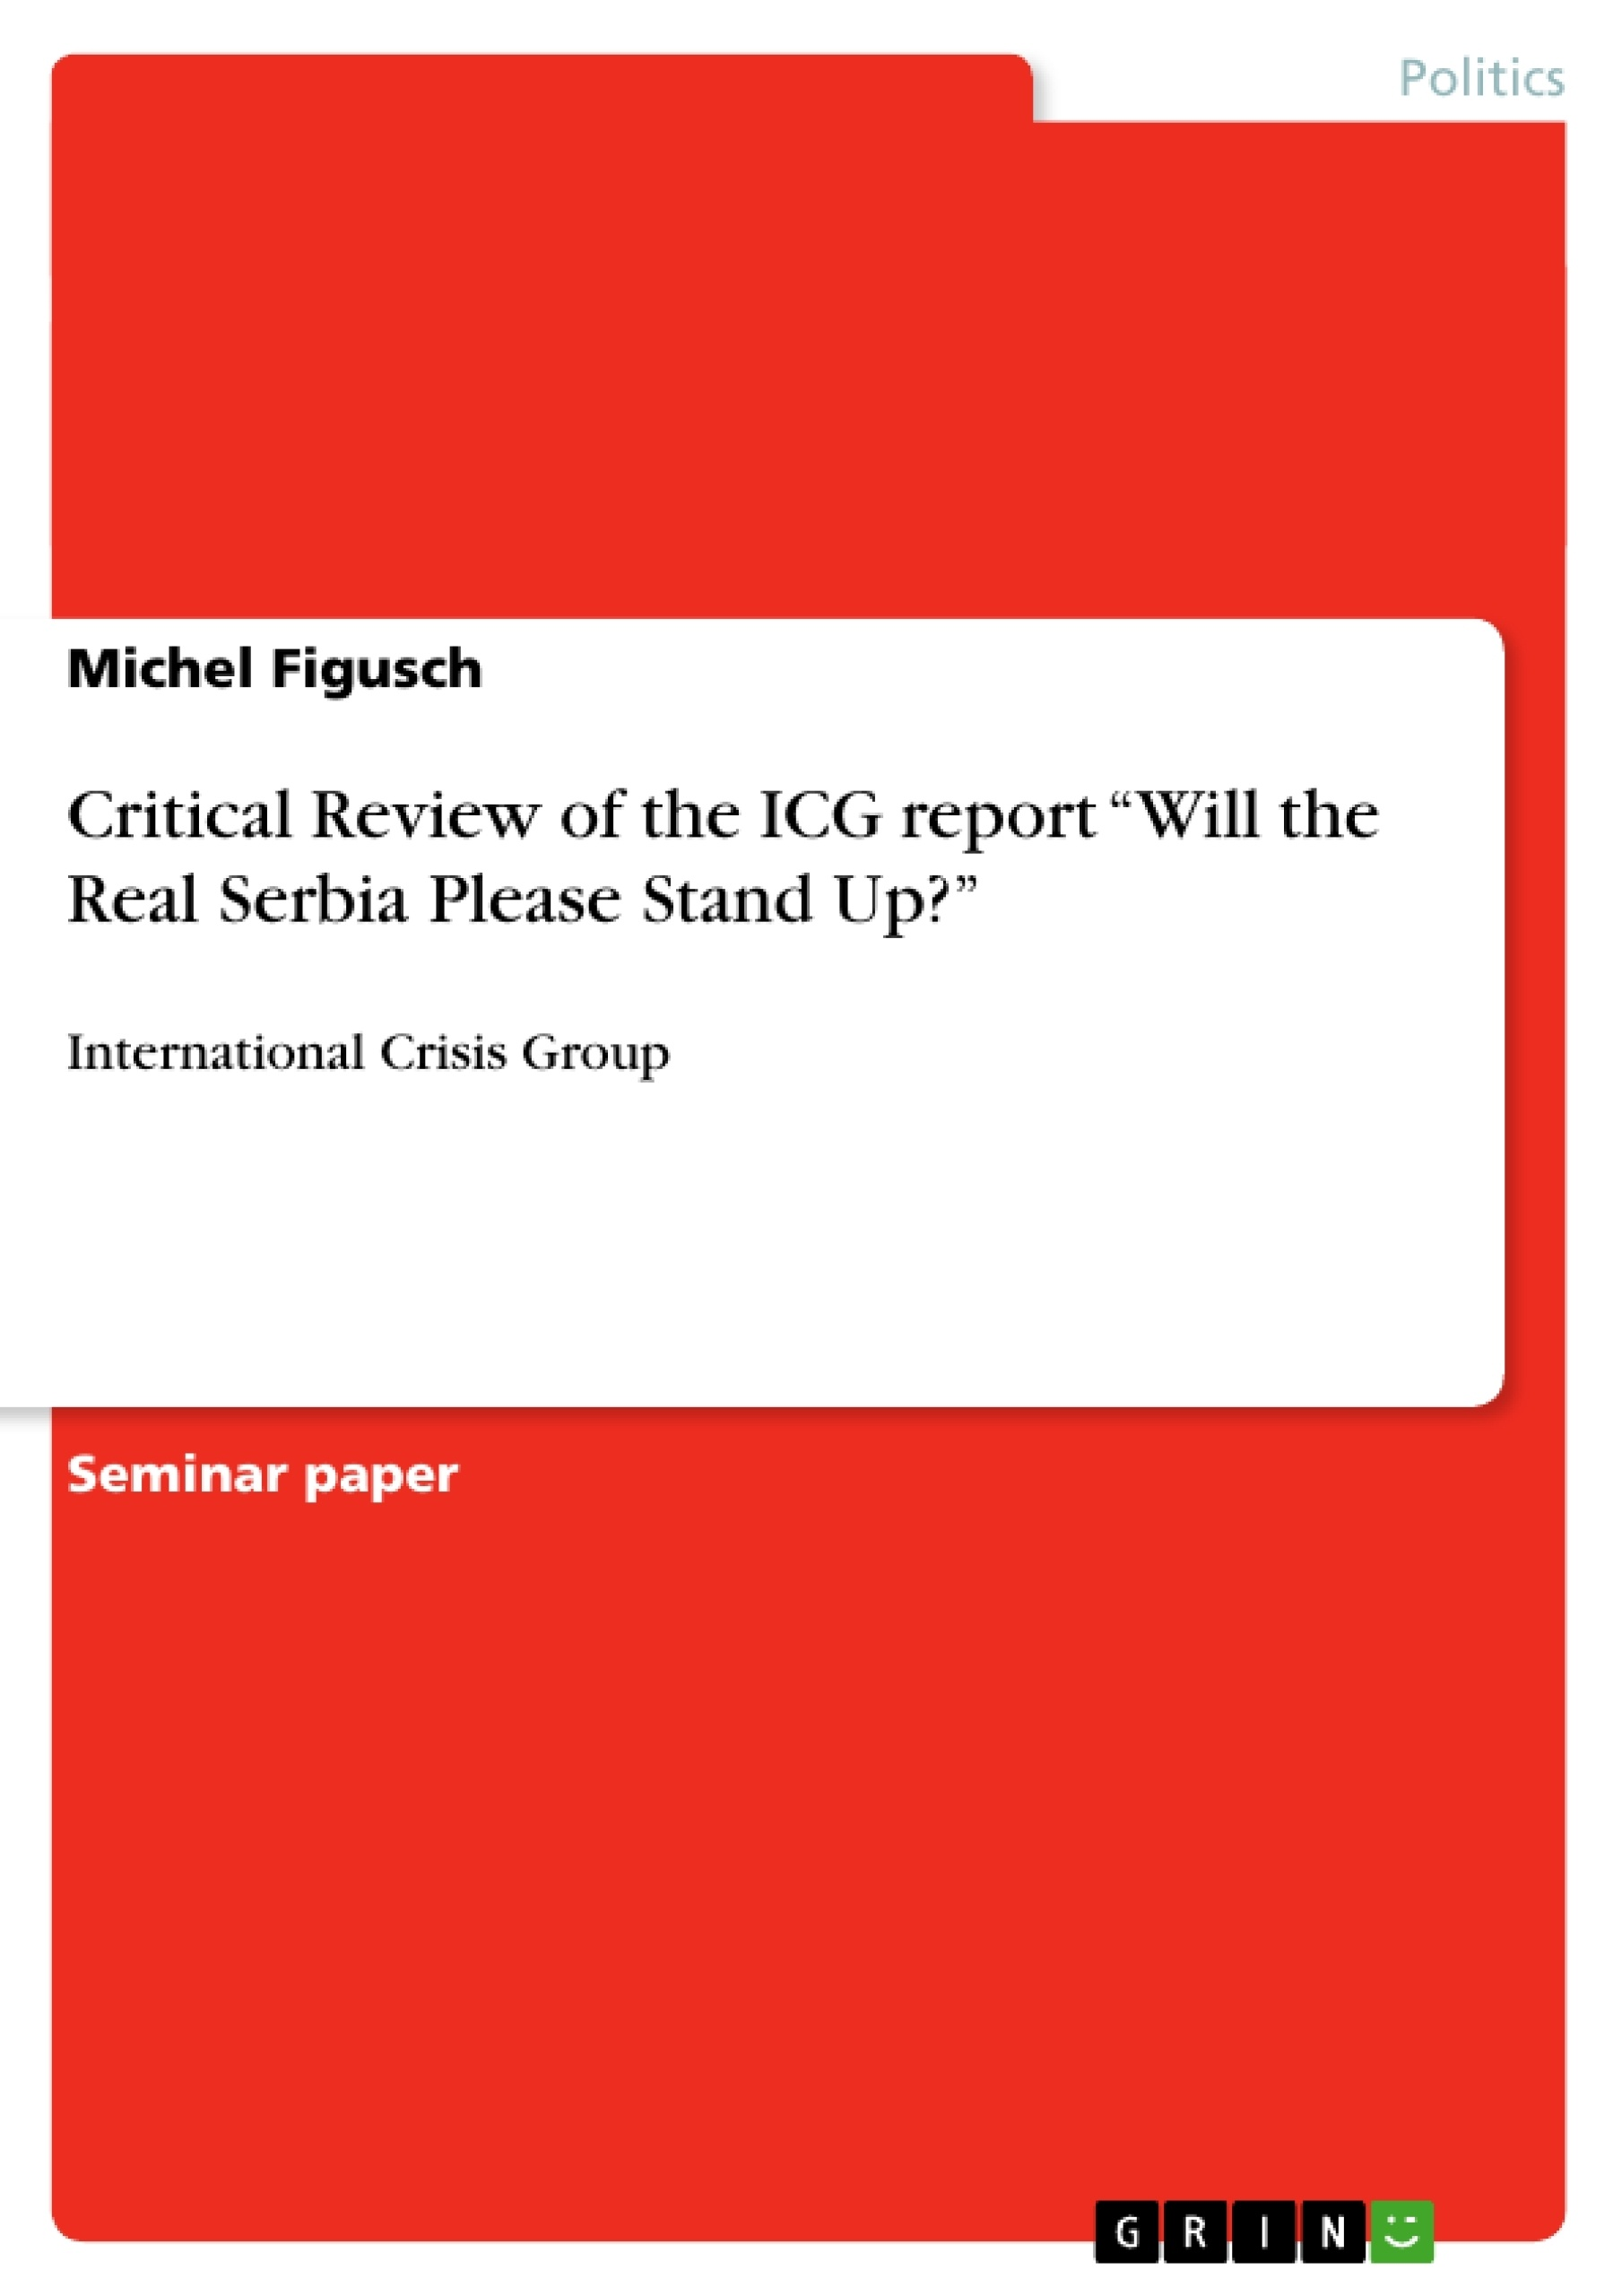 """Title: Critical Review of the ICG report """"Will the Real Serbia Please Stand Up?"""""""